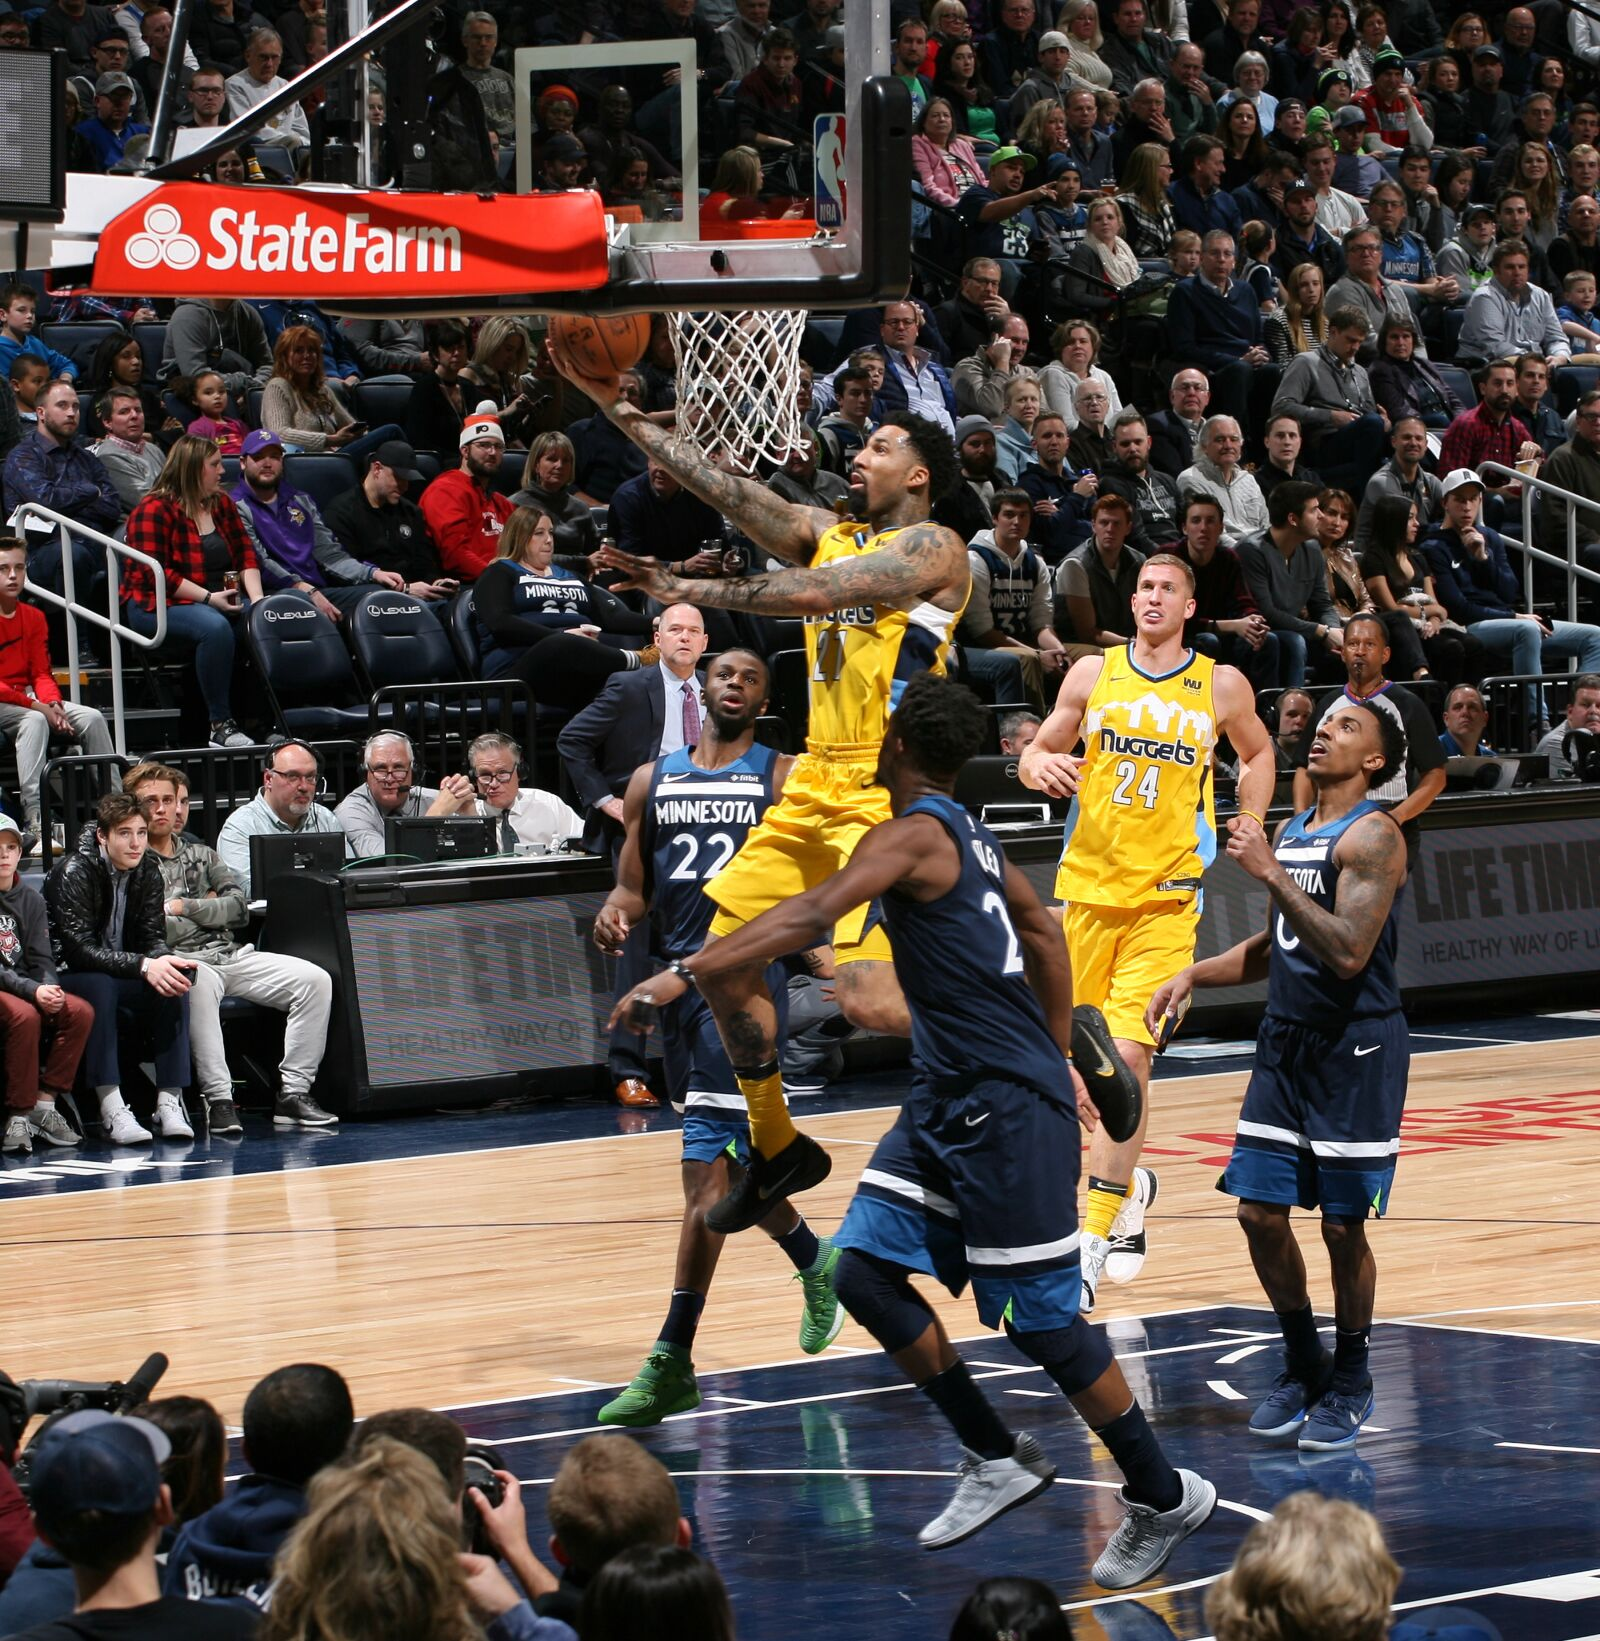 Denver Nuggets Struggling Without Star Power: The Denver Nuggets' Wilson Chandler Will Math Up With